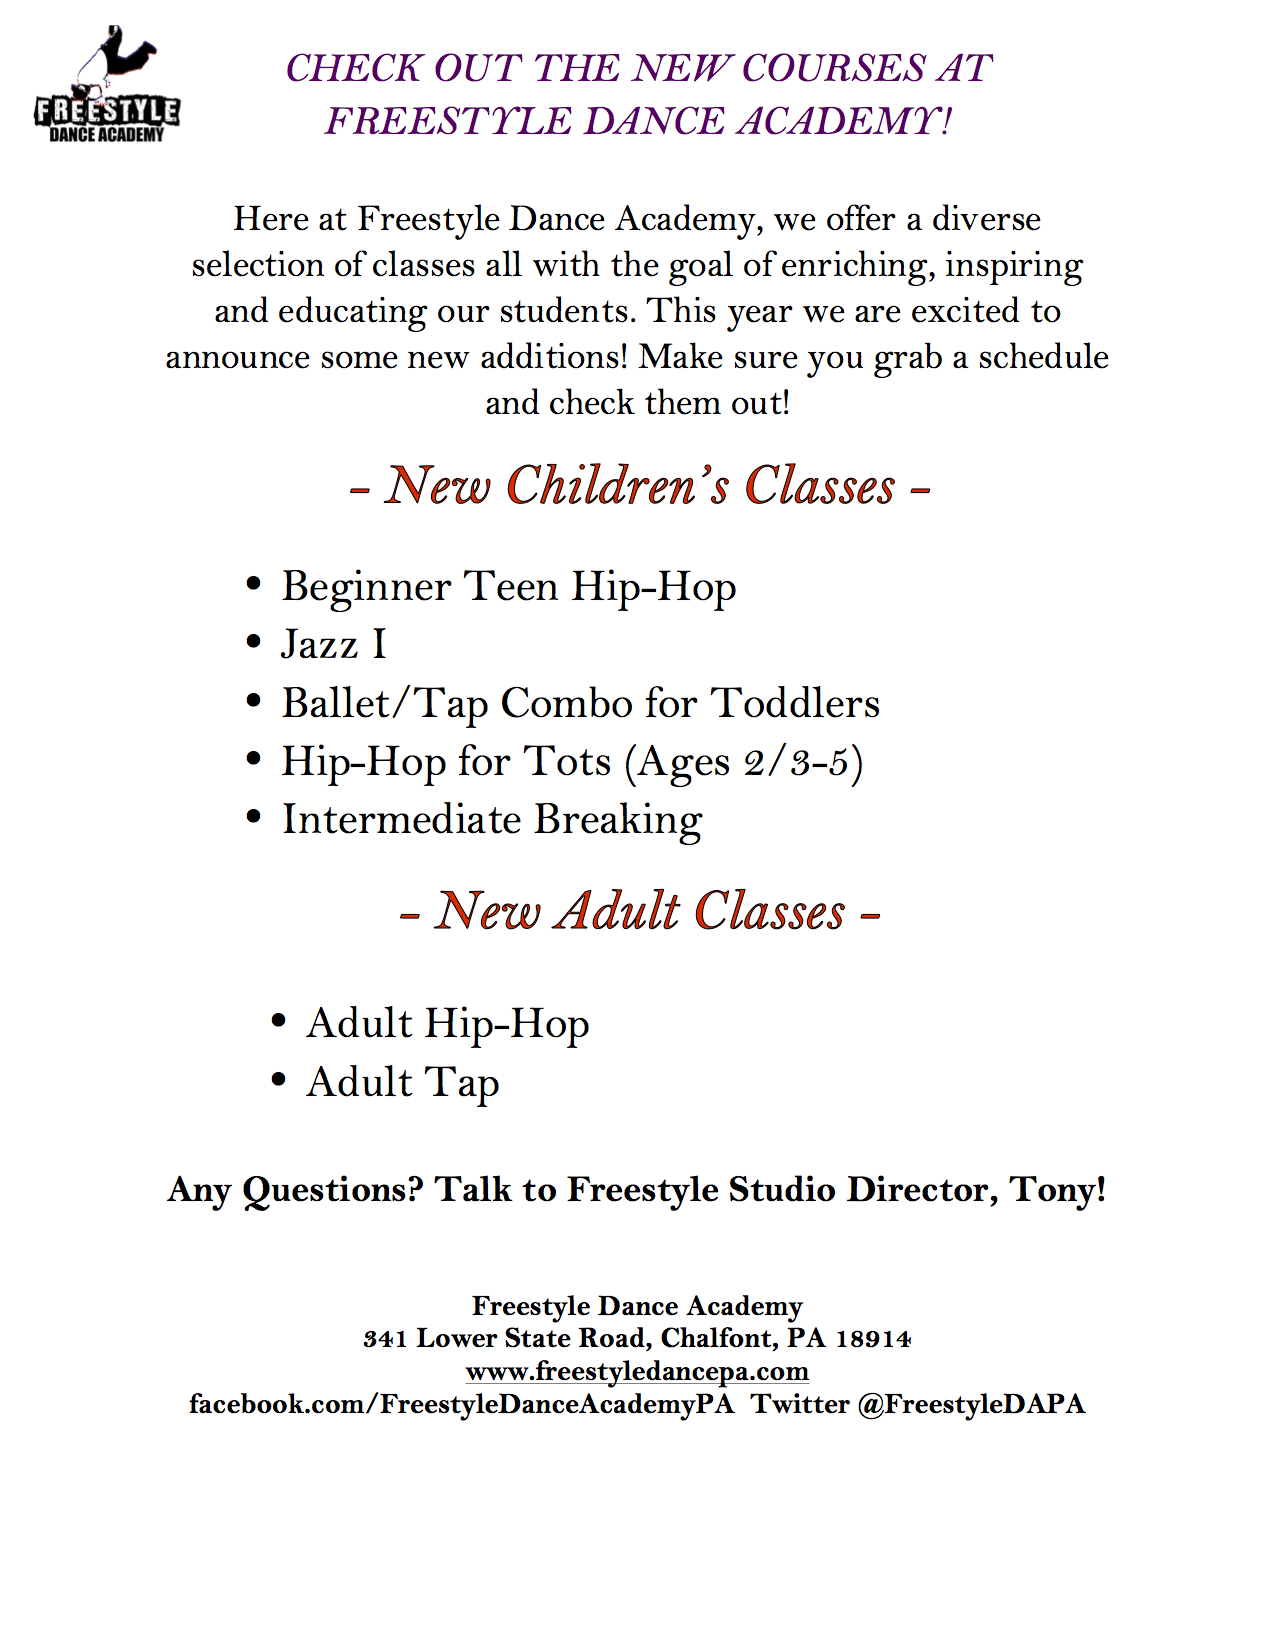 New classes at Freestyle Dance Academy for 2013.